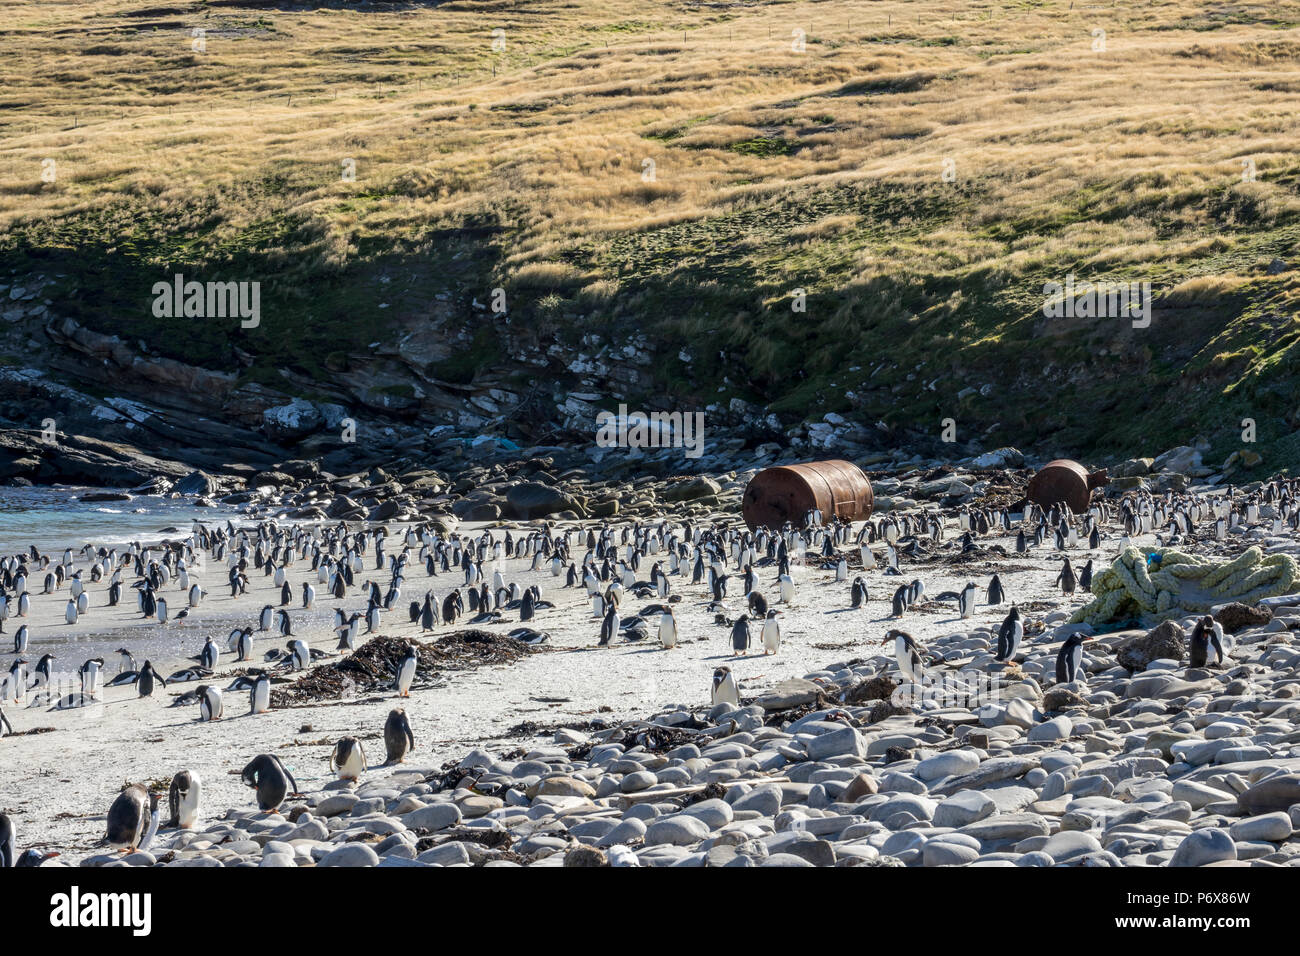 Gentoo penguin colony at Grave Cove, West Falkland, Falkland Islands Stock Photo